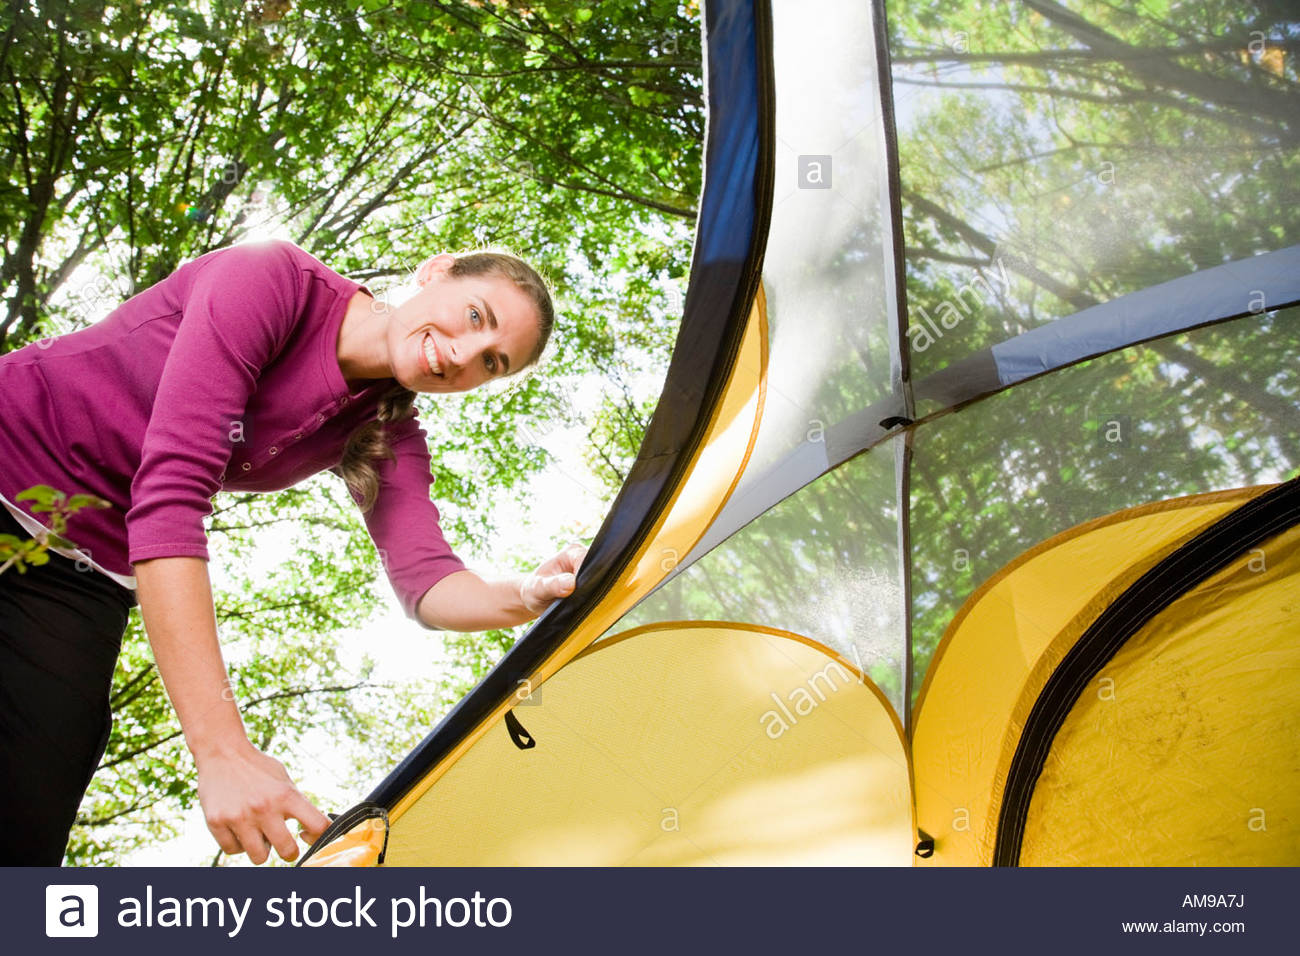 Woman zipping up tent - Stock Image